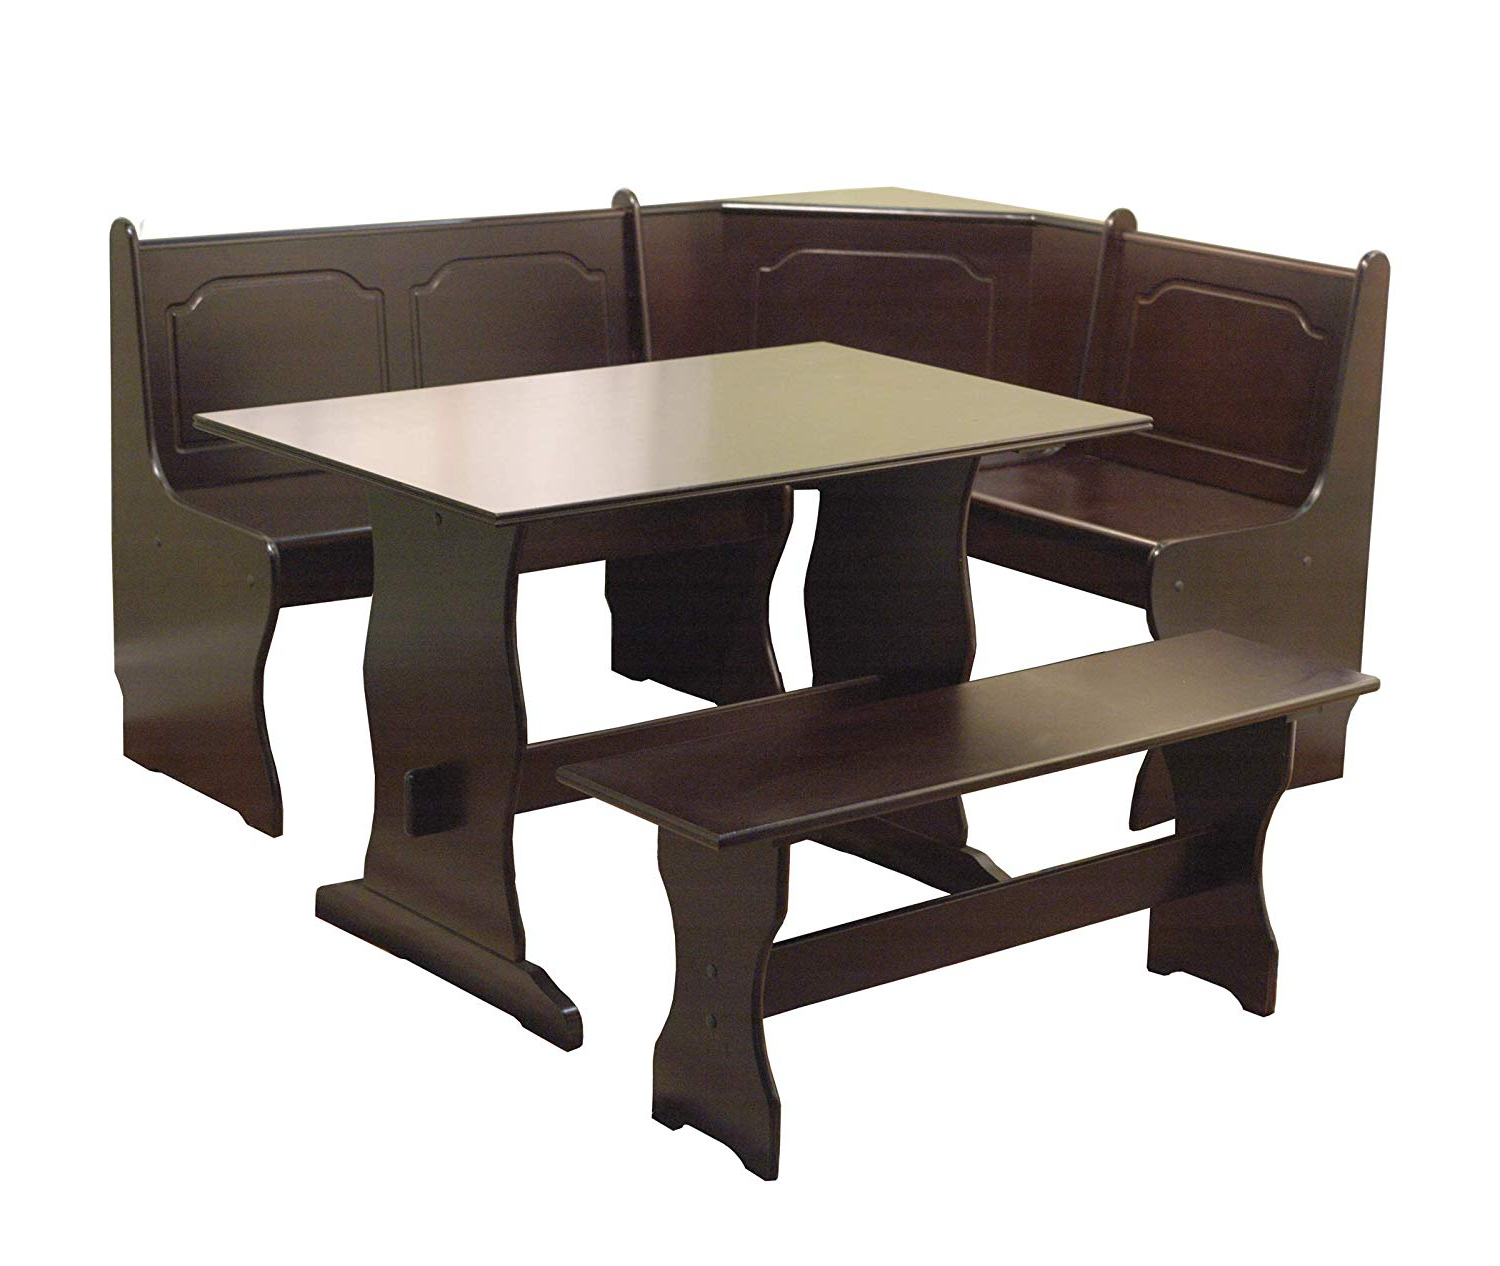 3 Piece Breakfast Nook Dinning Set Intended For Fashionable Target Marketing Systems 3 Piece Breakfast Nook Dining Set With A L Shaped Storage Bench And A Trestle Style Dining Table And Bench, Espresso (View 9 of 20)